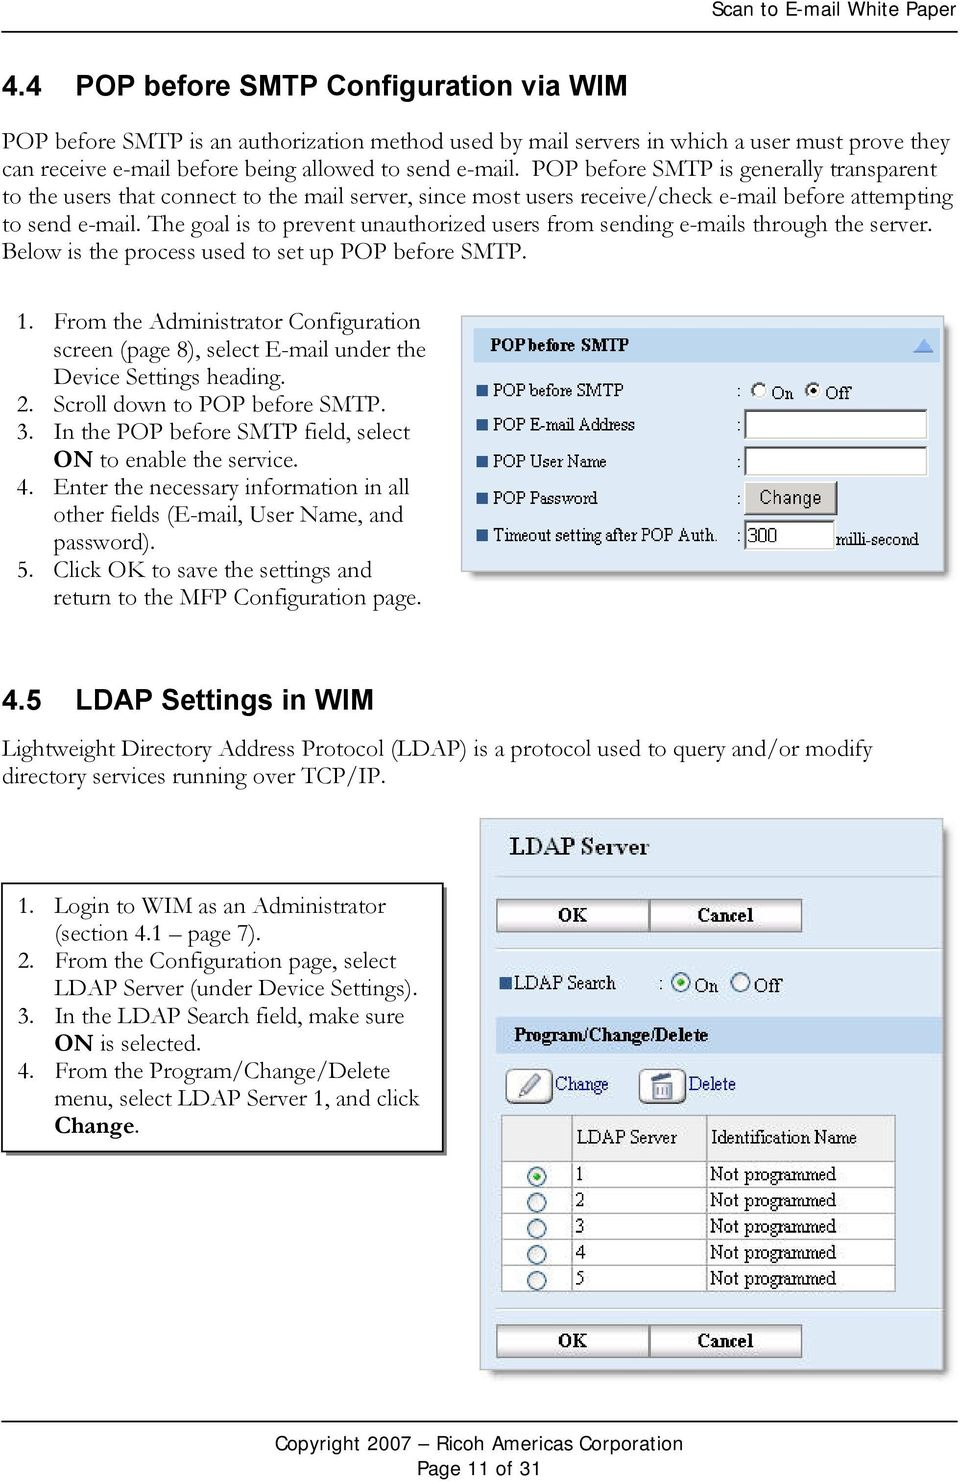 Scan to White Paper Ricoh Americas Corporation May PDF